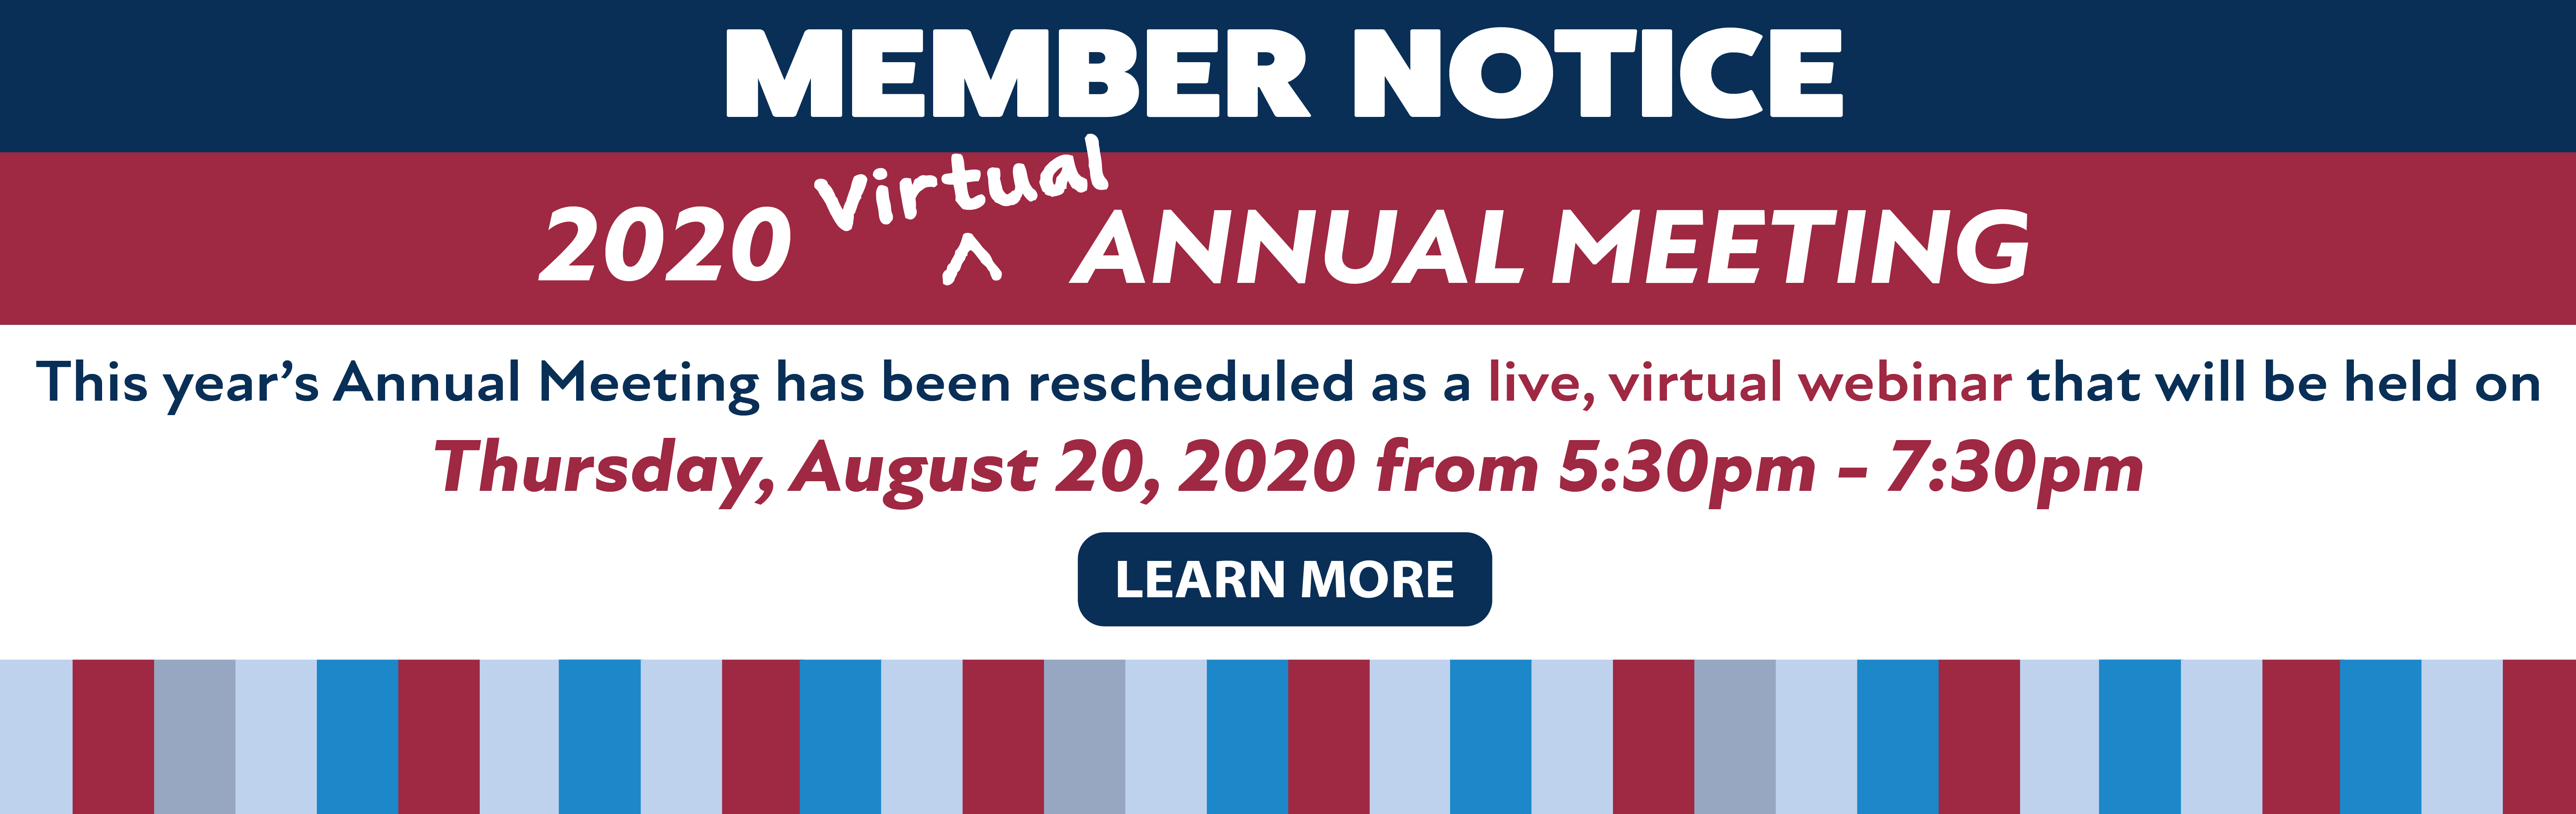 2020 Annual Meeting Rescheduled